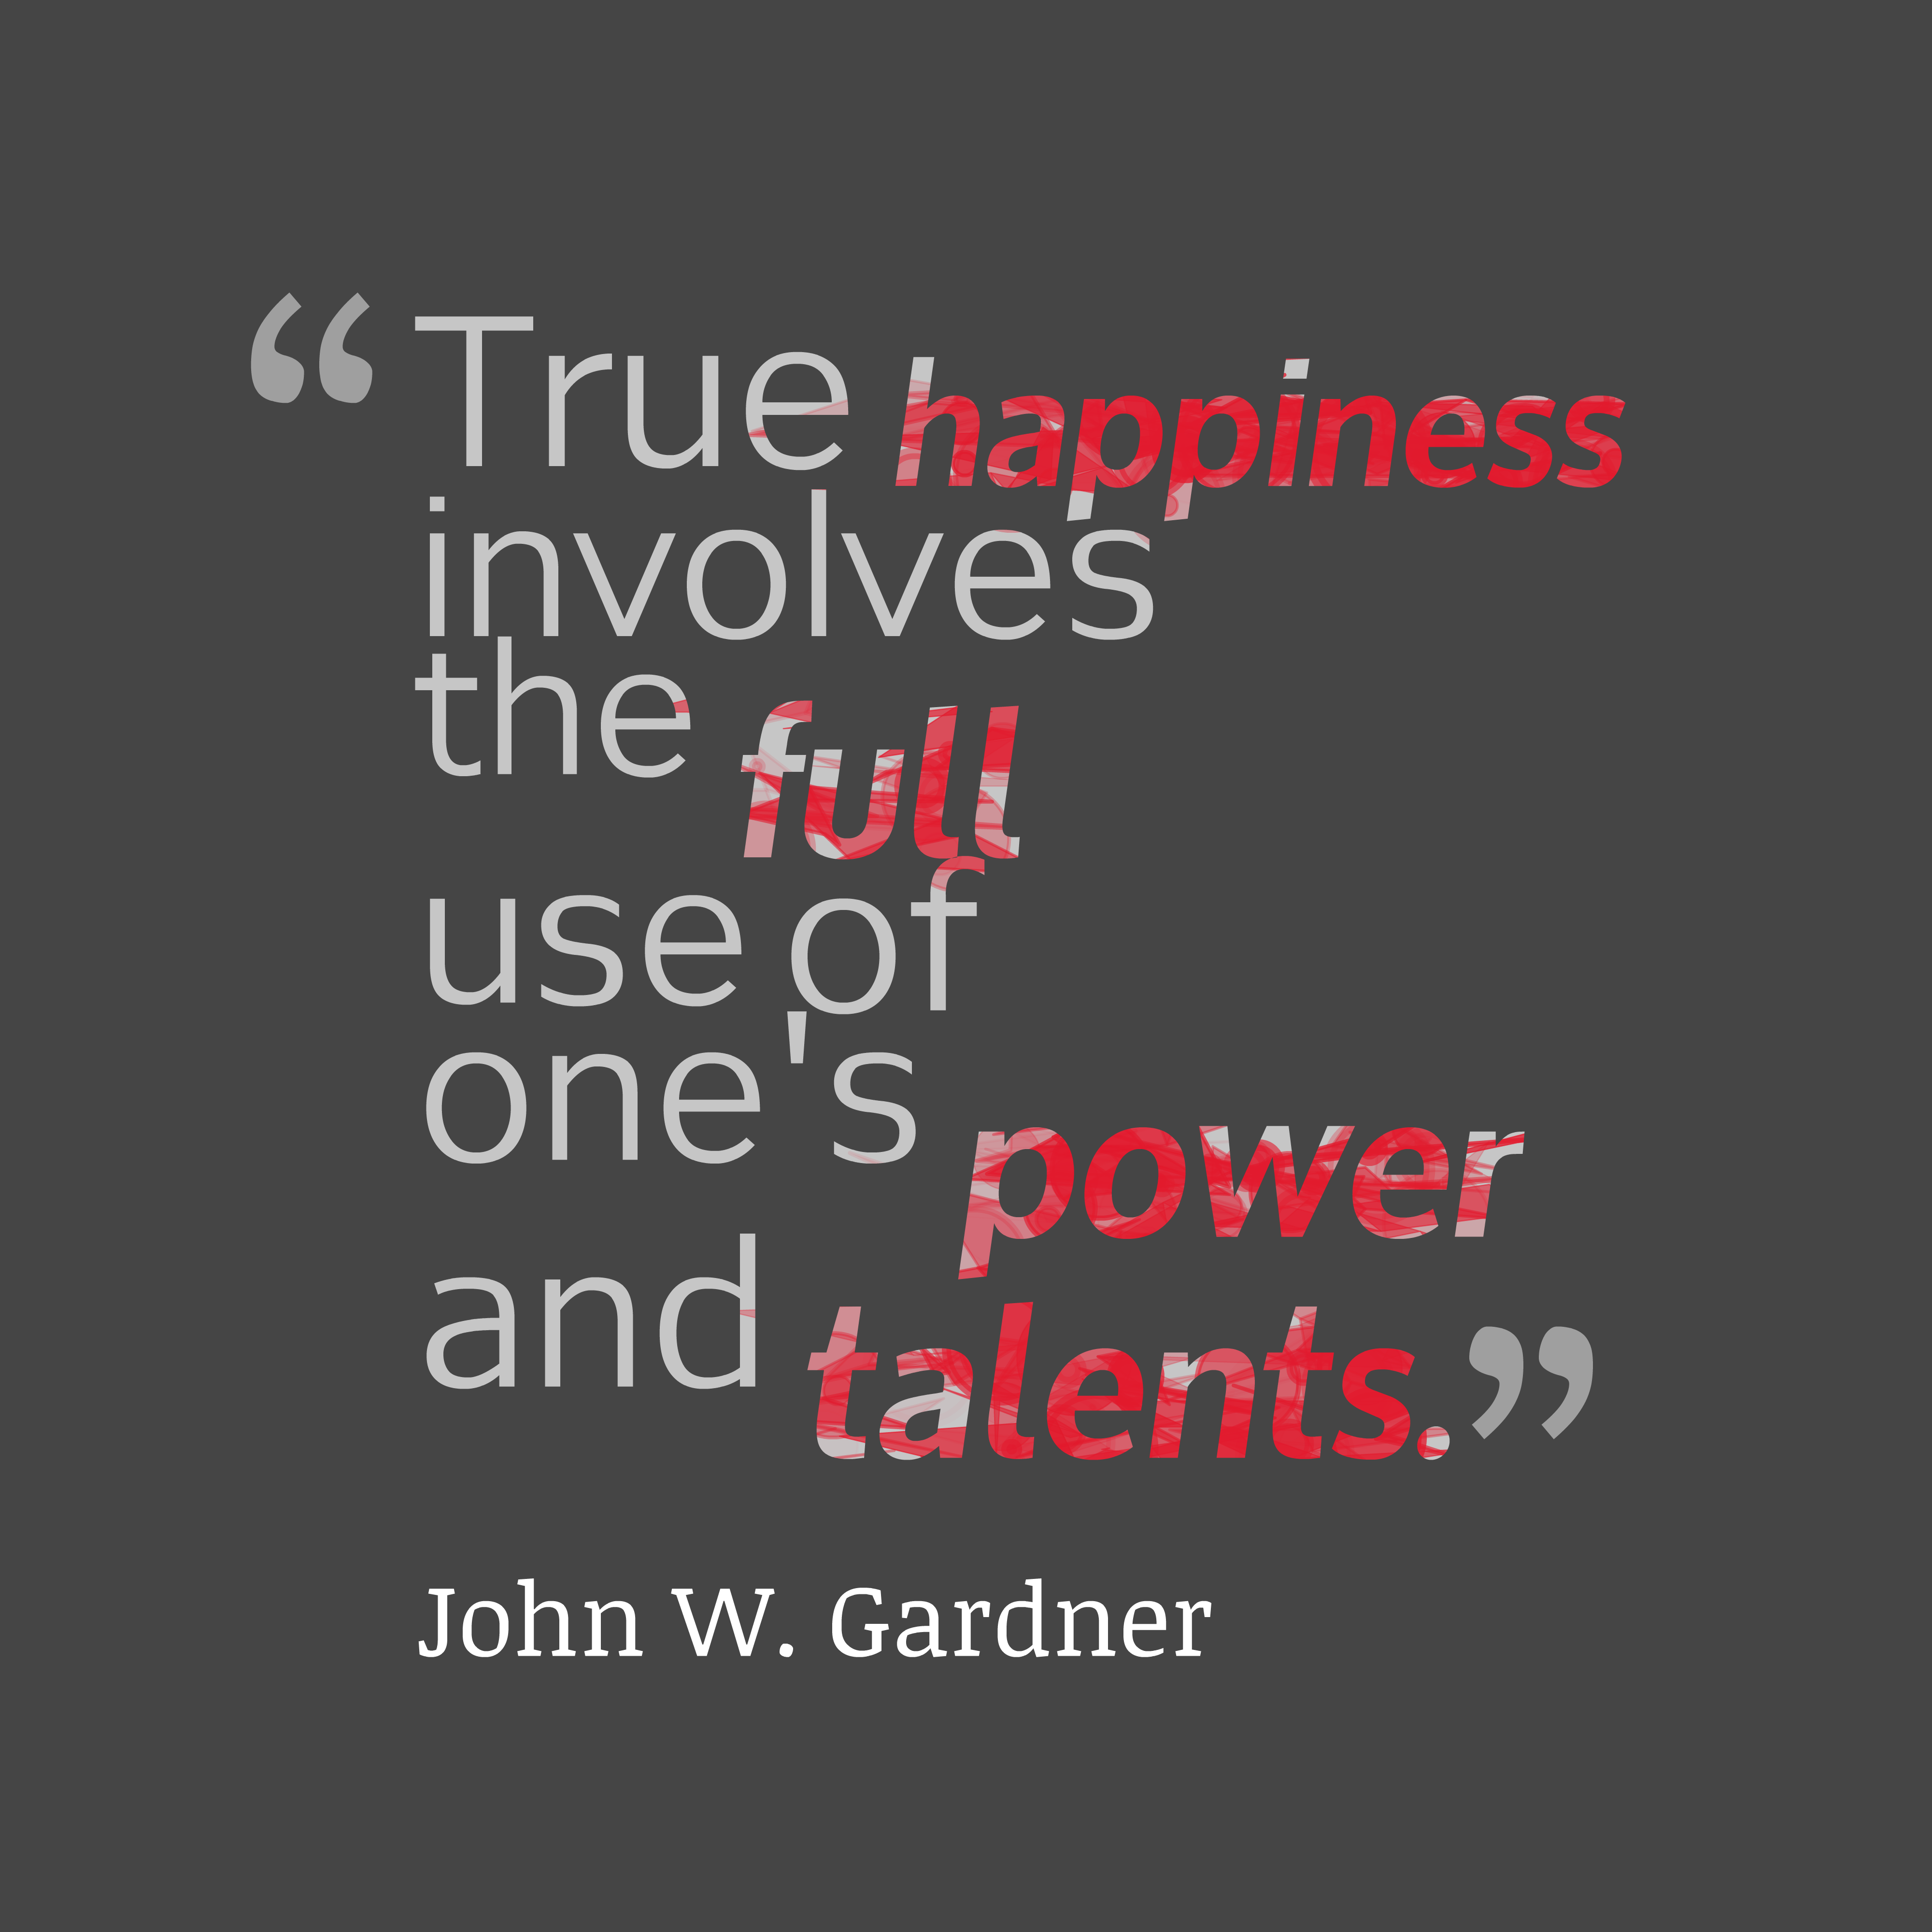 Quotes image of True happiness involves the full use of one's power and talents.